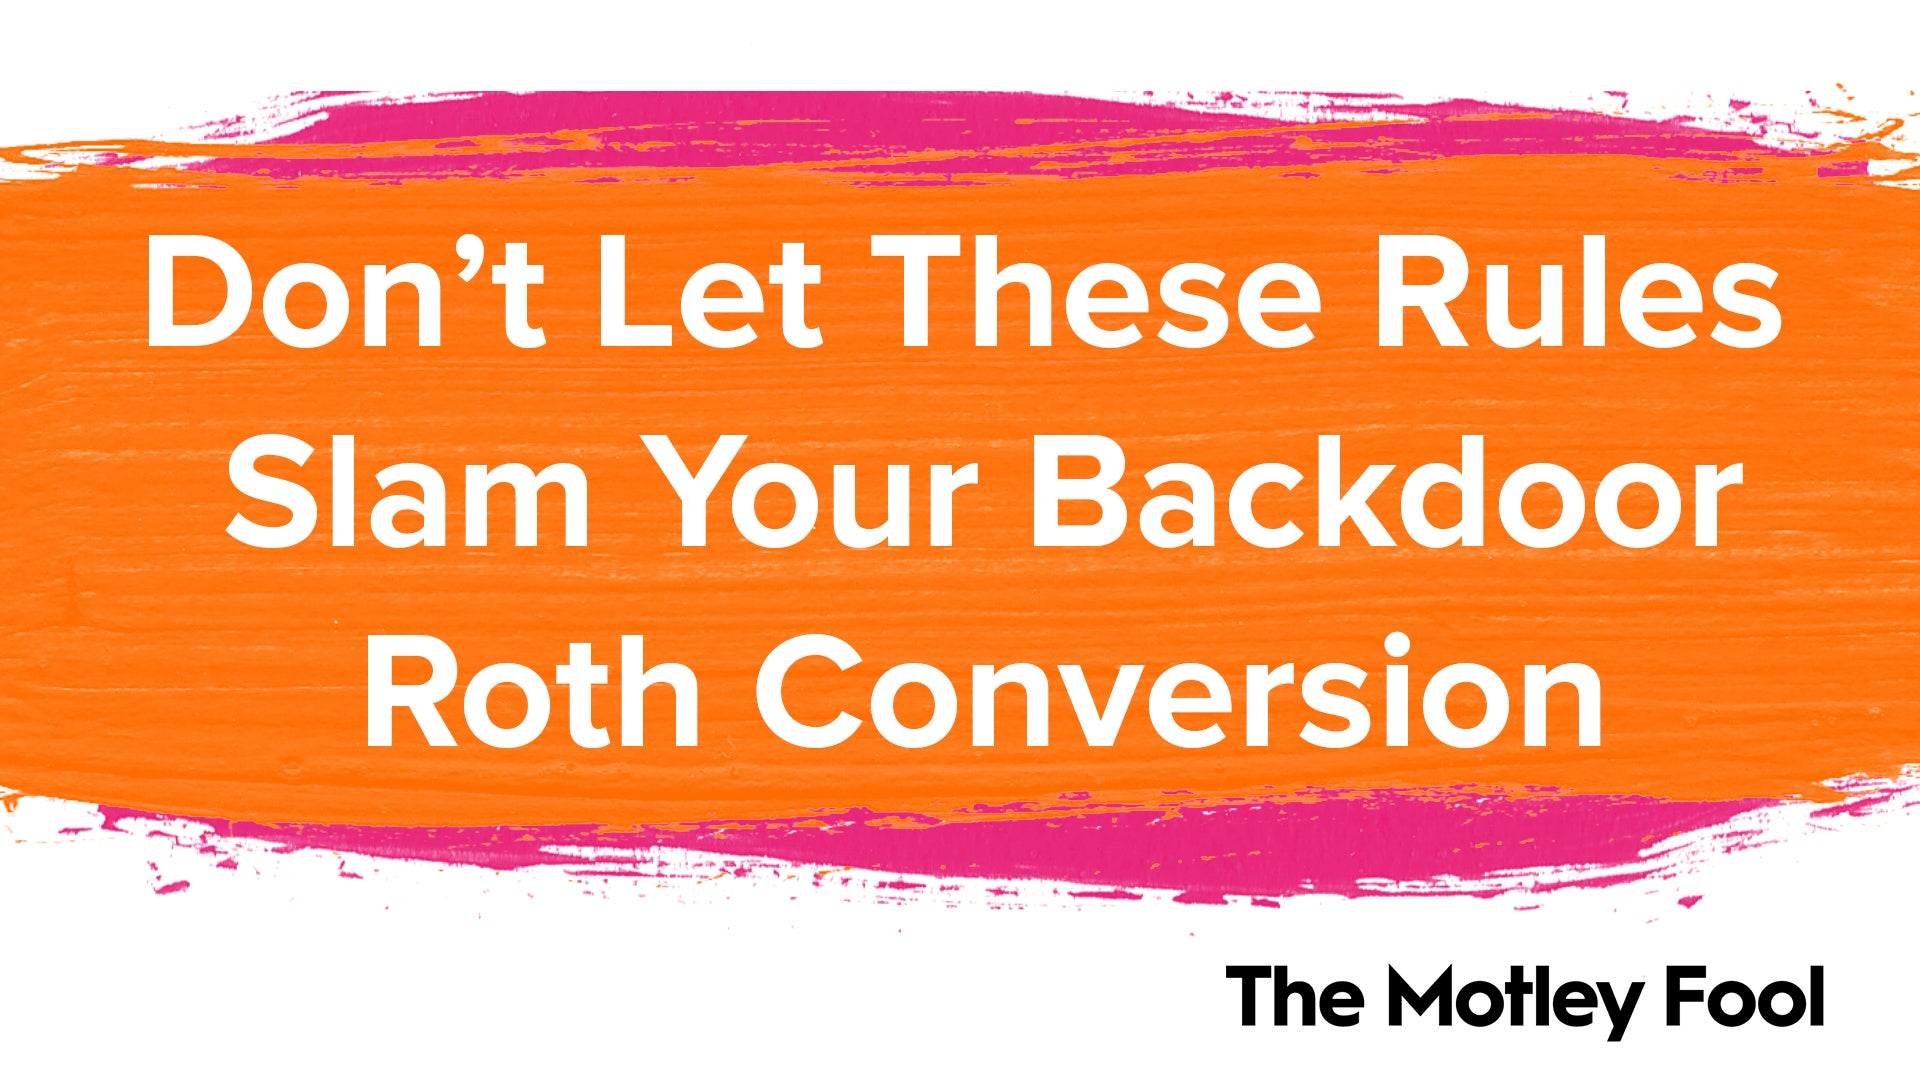 Don't Let These Rules Slam Your Backdoor Roth Conversion